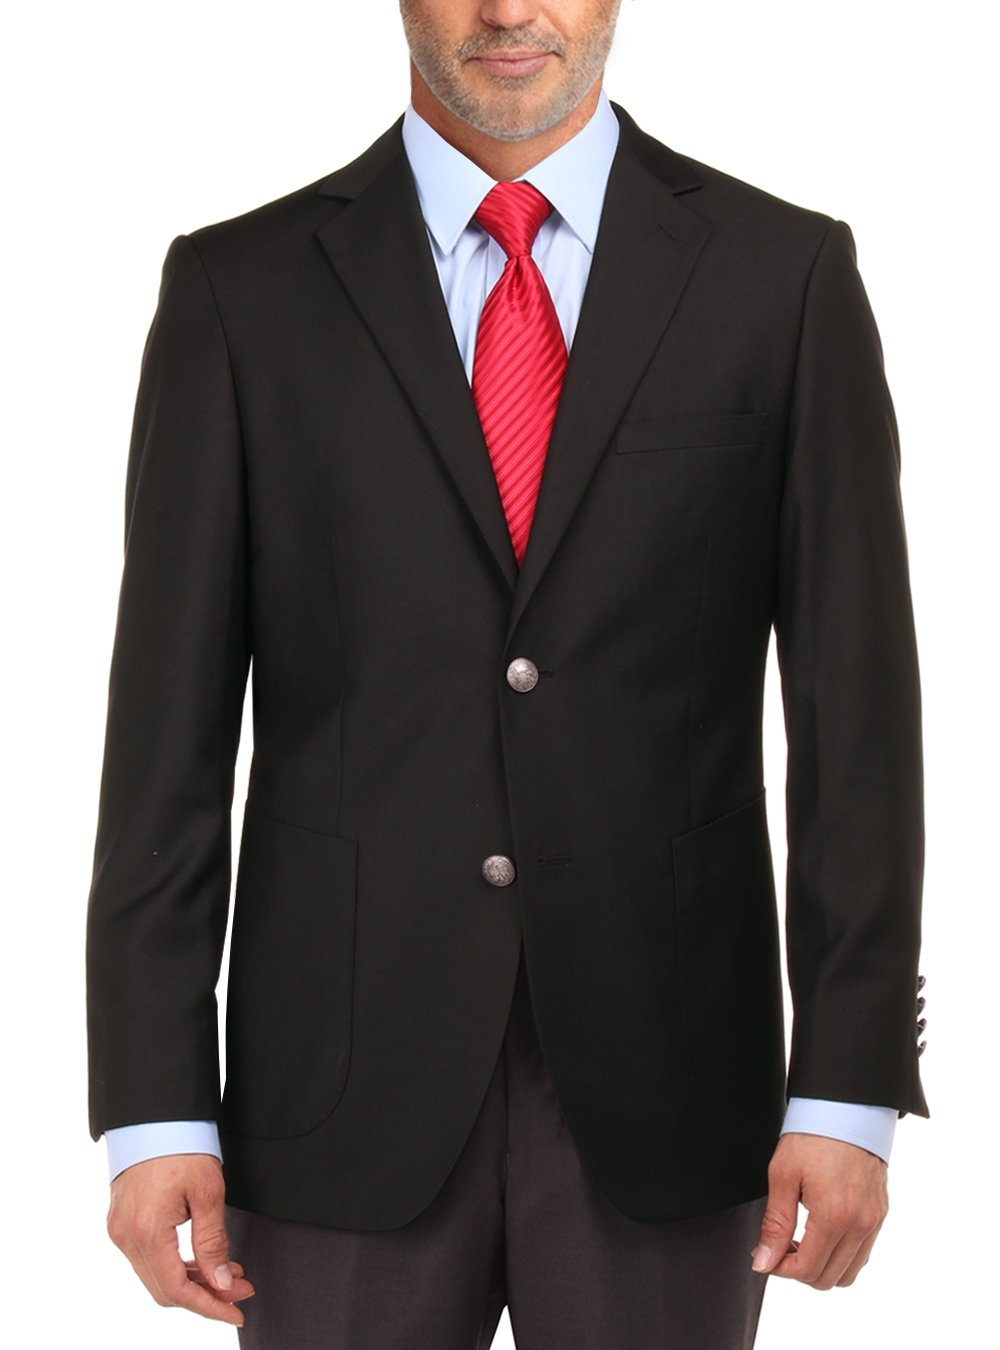 Salvatore Exte Men's 2 Button Suit Separate Jacket Sport Coat Blazer (42 Short US/52S EU,Black)